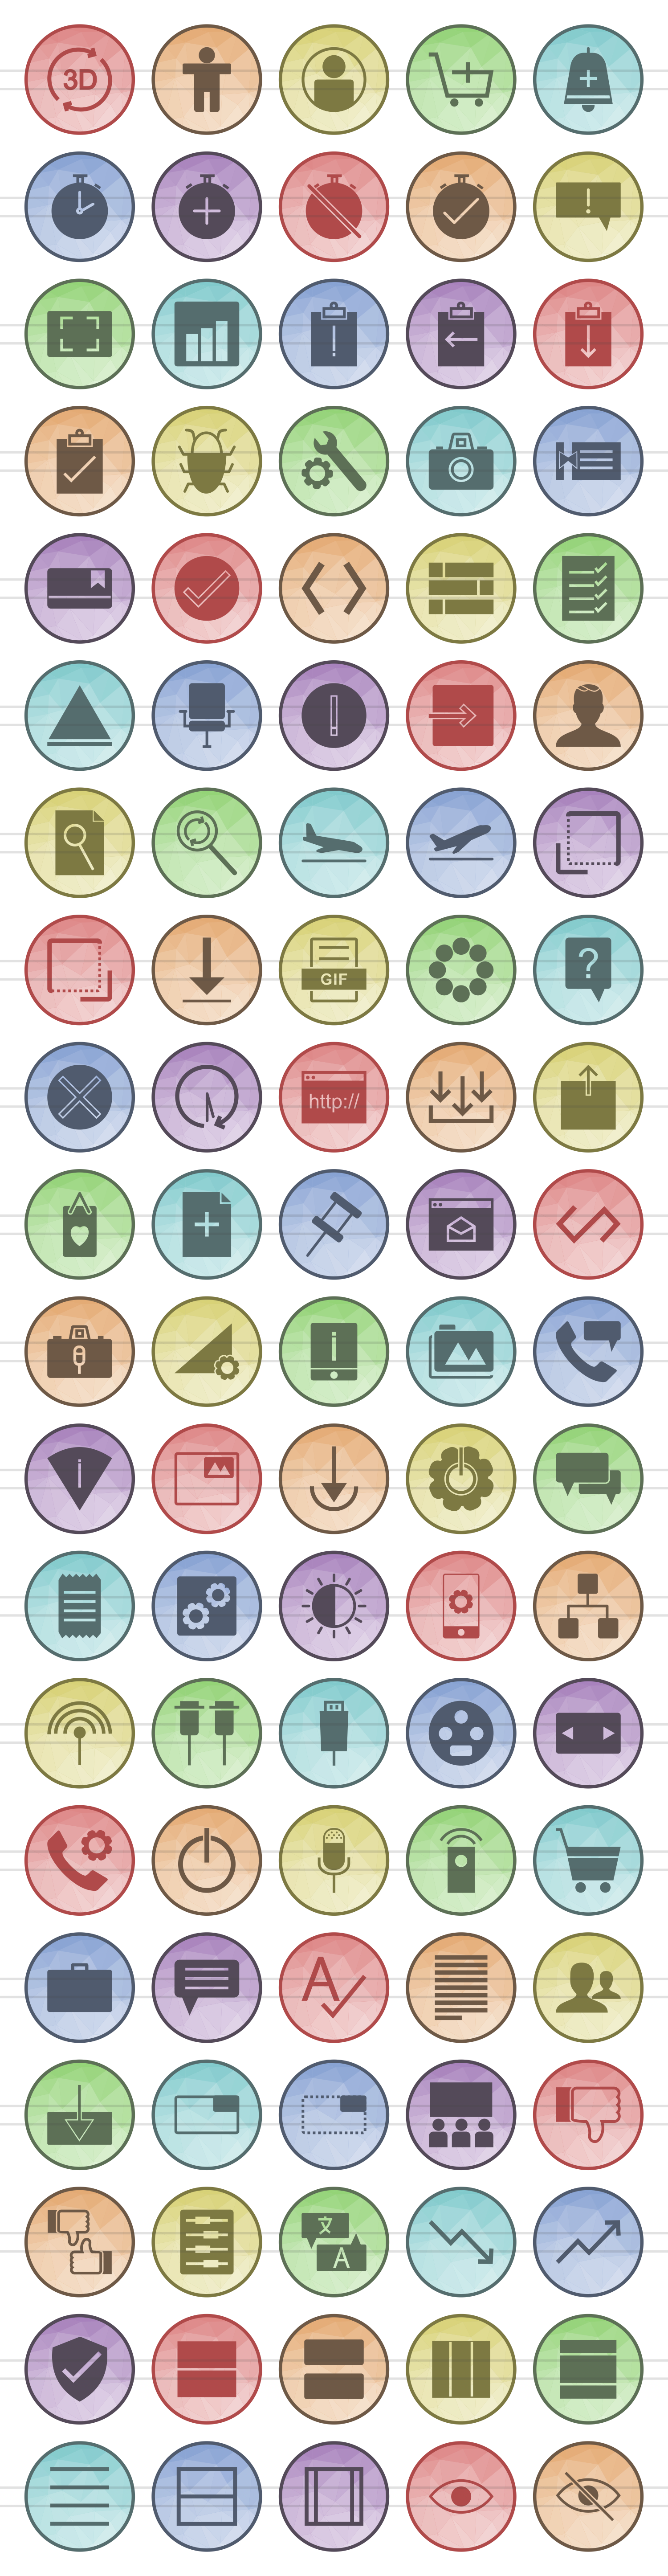 100 Material Design Filled Low Poly Icons example image 2